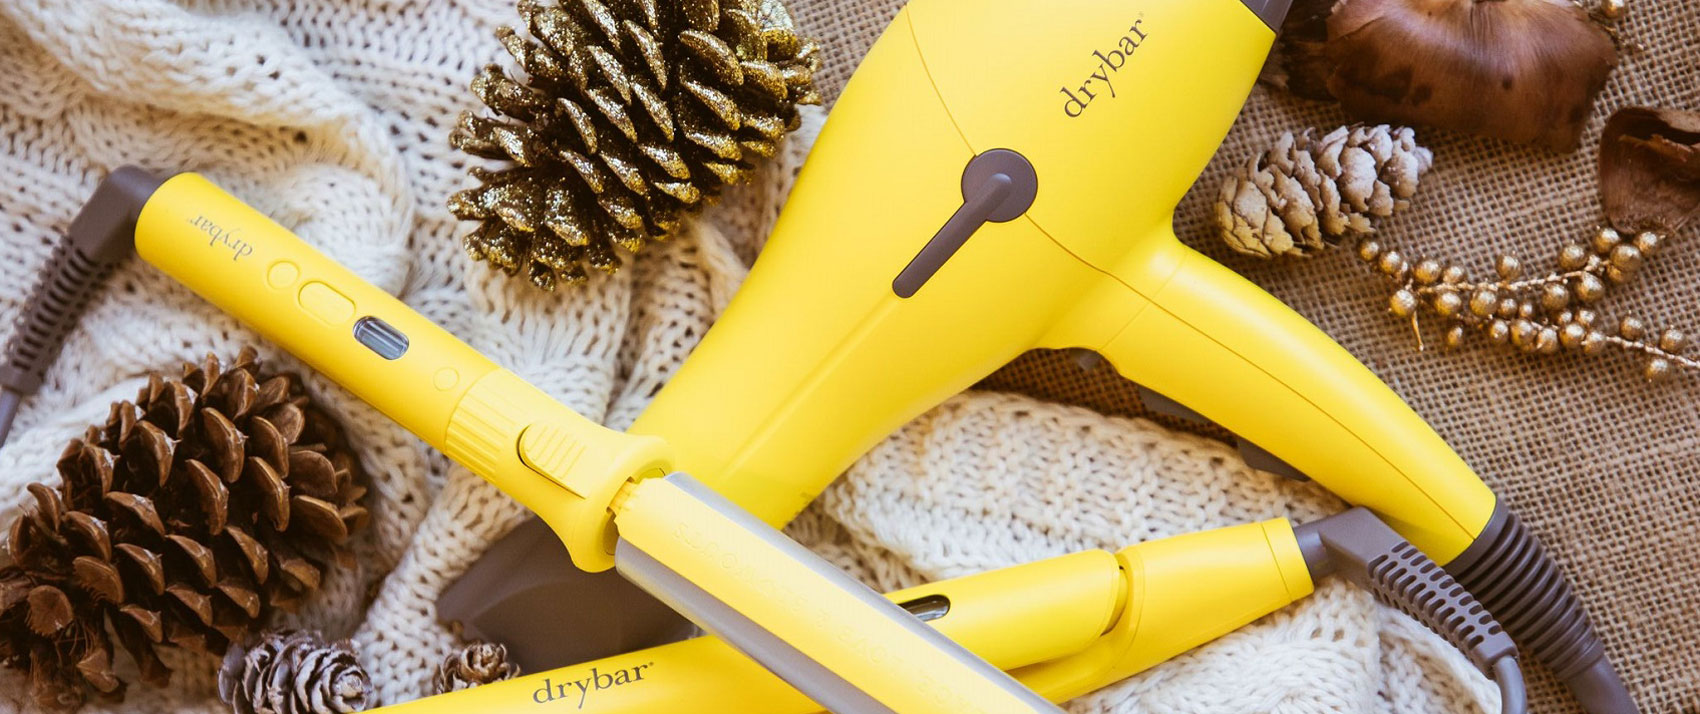 Drybar iron and blowdryer